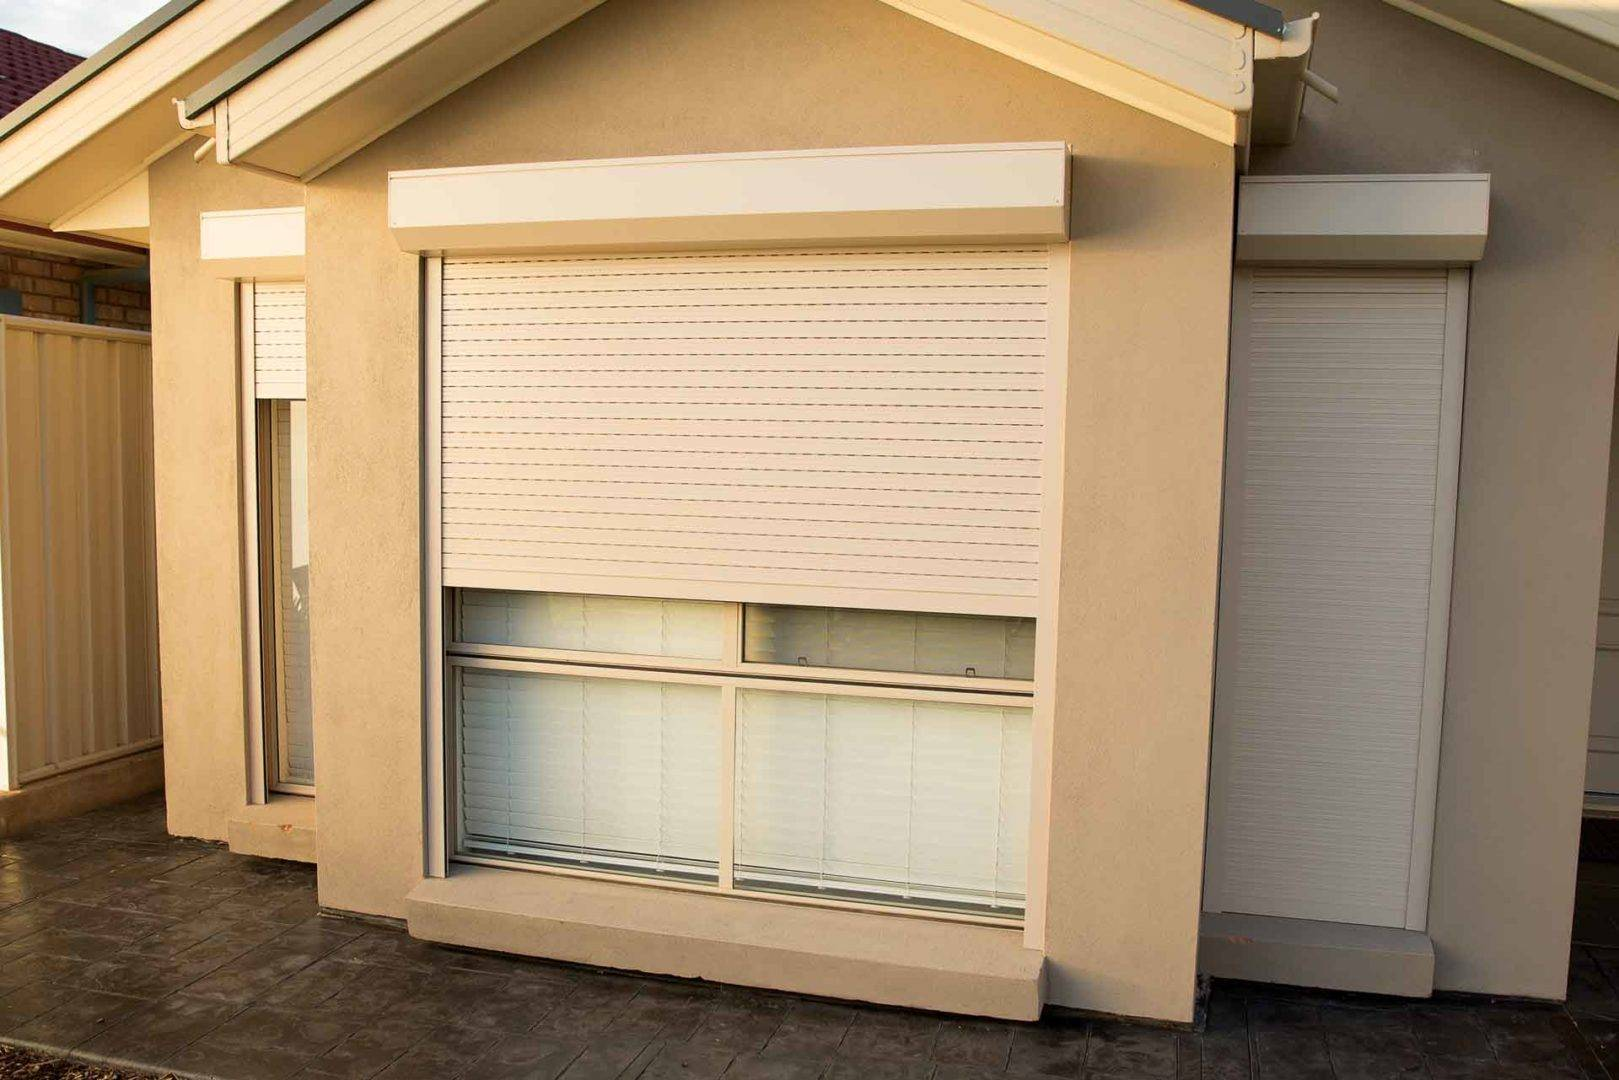 Why should I invest more on a quality set of roller shutters - Australian Outdoor Living's roller shutters have great insulation benefits, Australian Outdoor Living.